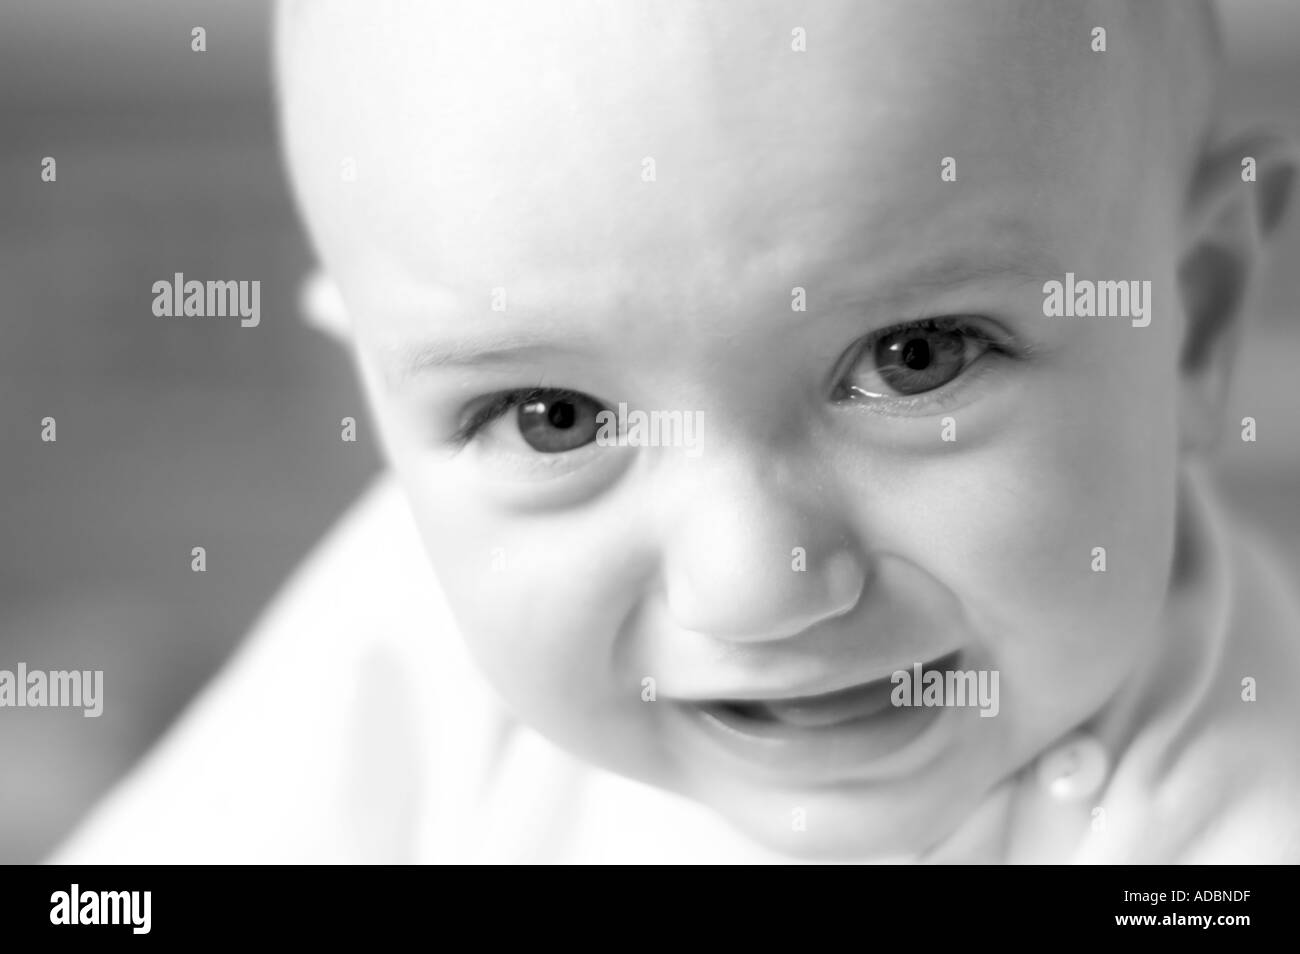 Nine month old baby boy crying - Stock Image